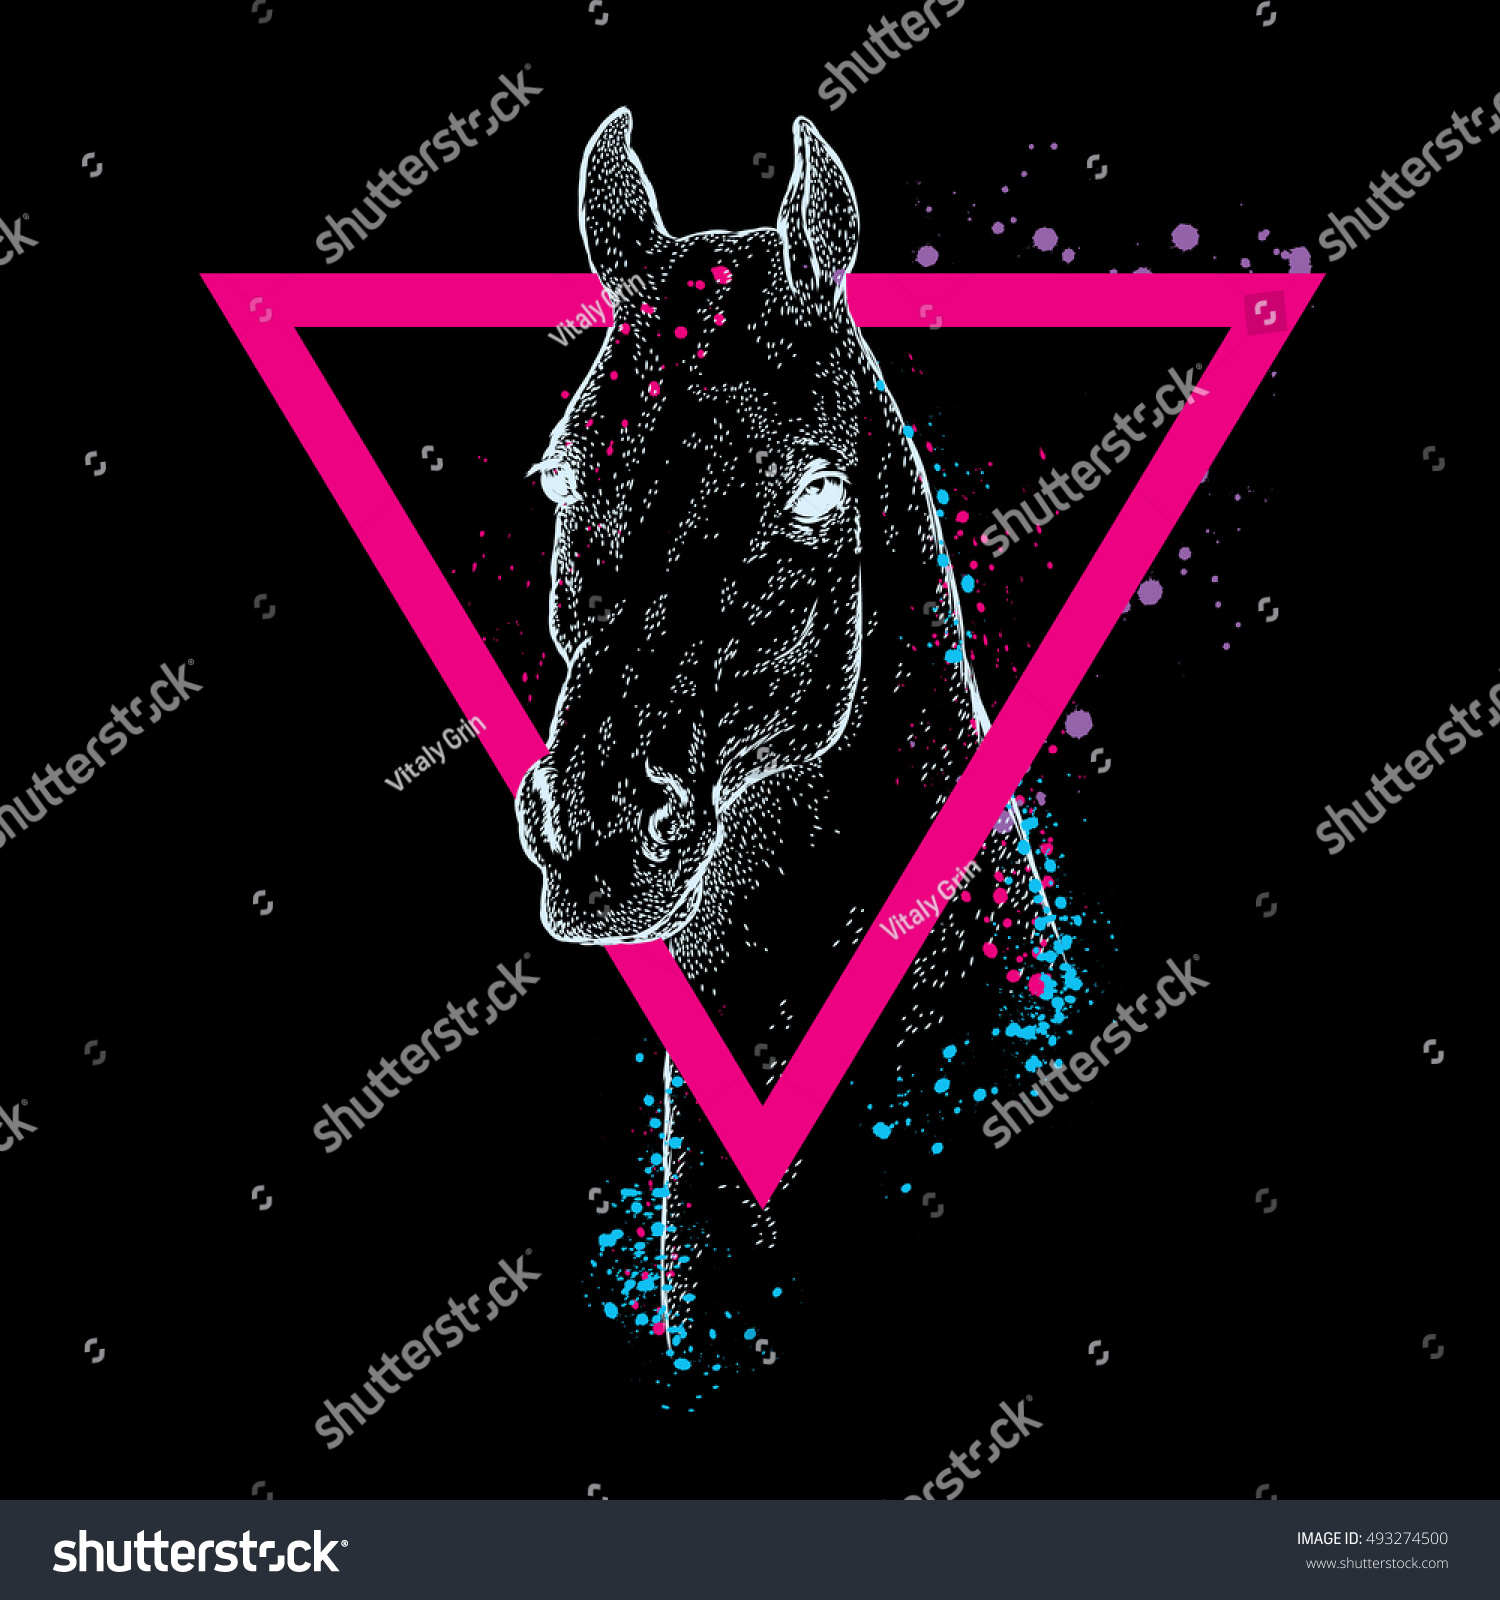 Beautiful Horse Triangle Vector Illustration Greeting Stock Vector